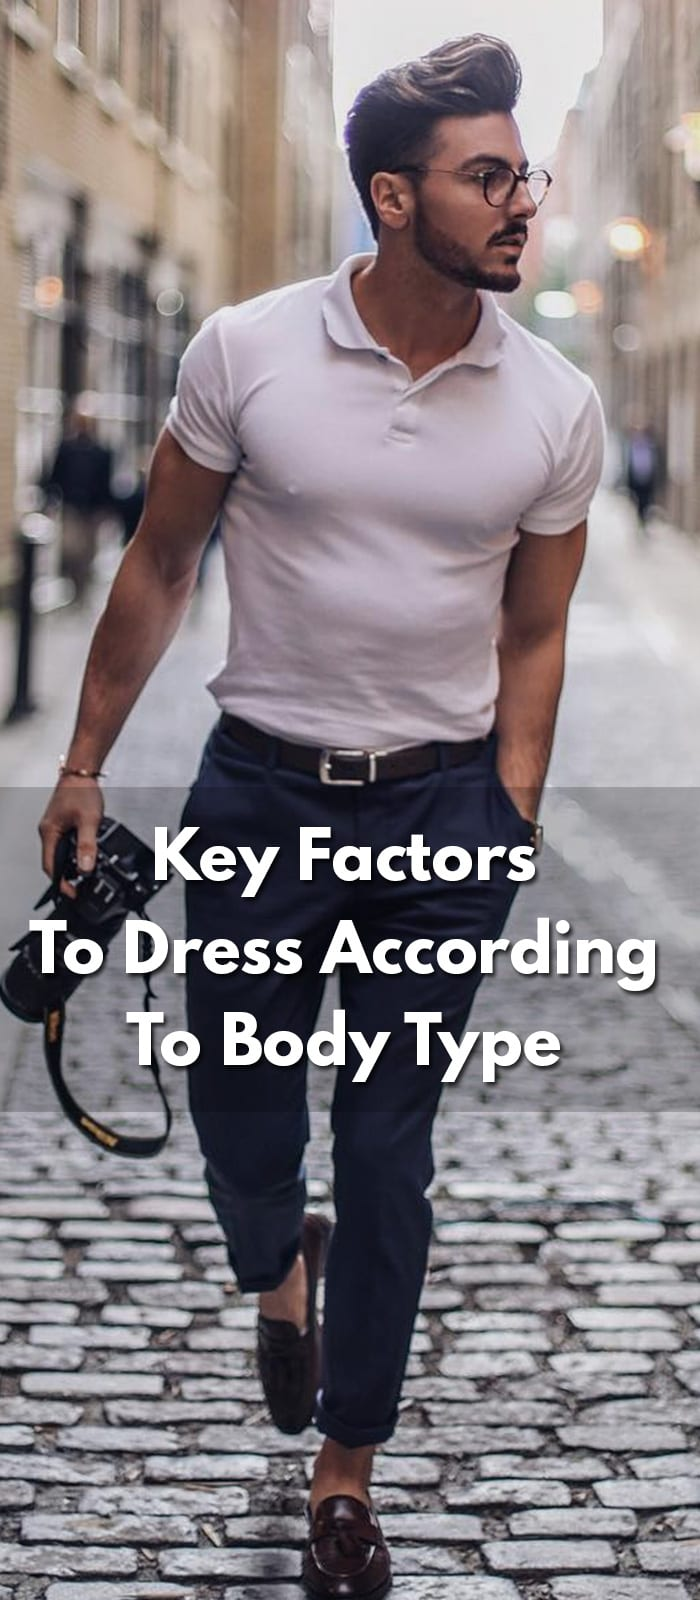 Key-Factors-To-Dress-According-To-Body-Type.